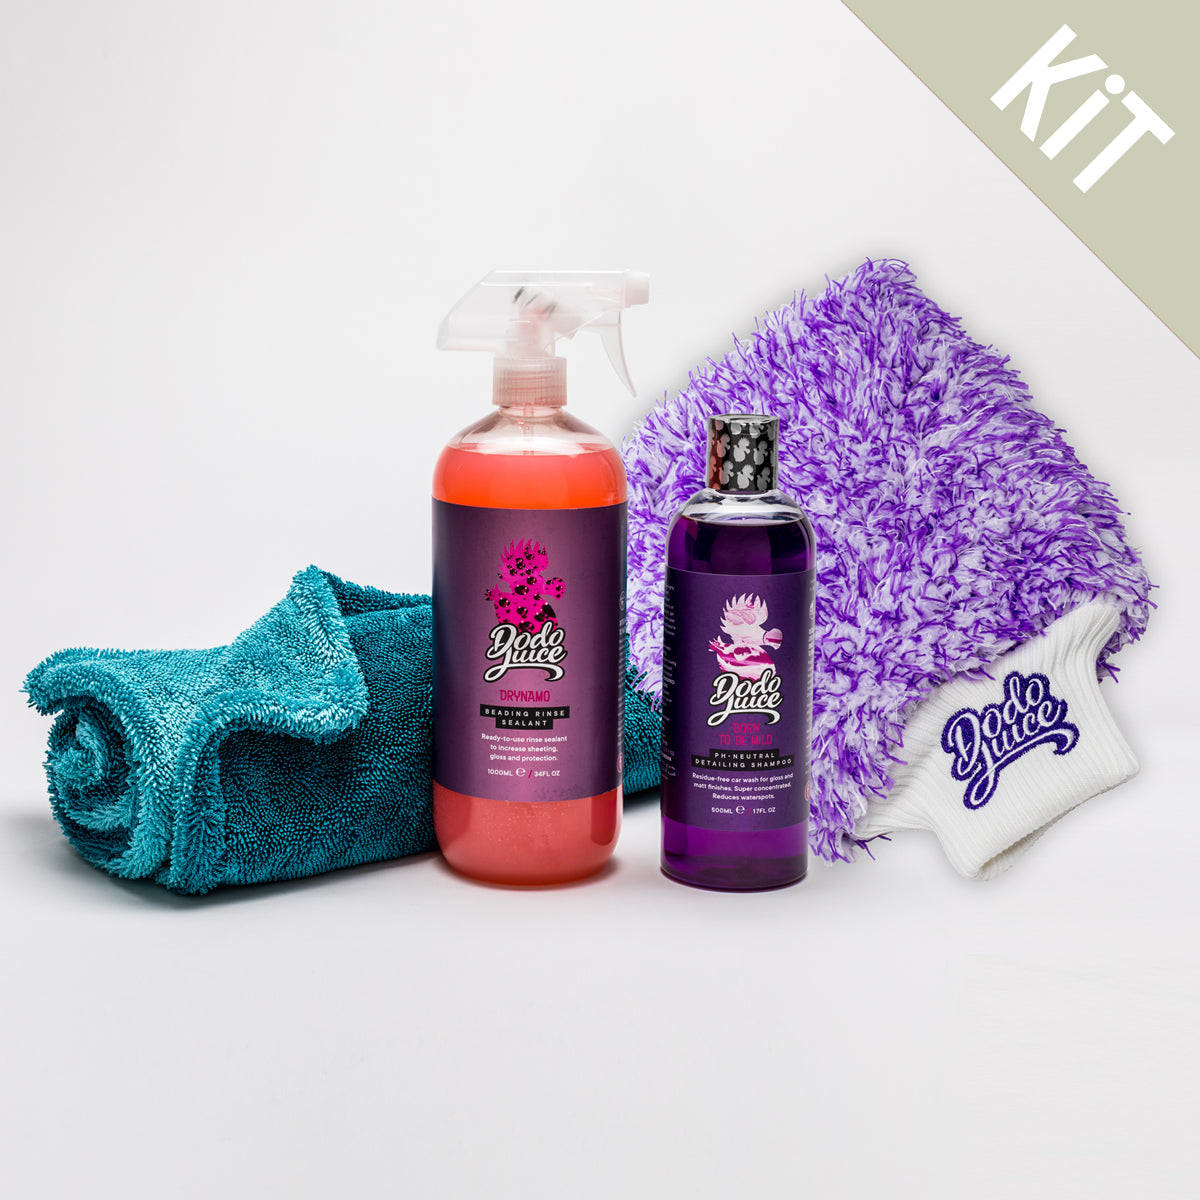 Wash Boss kit - shampoo, mitt and towel wash stage bundle (4 items) - up to £8 saving